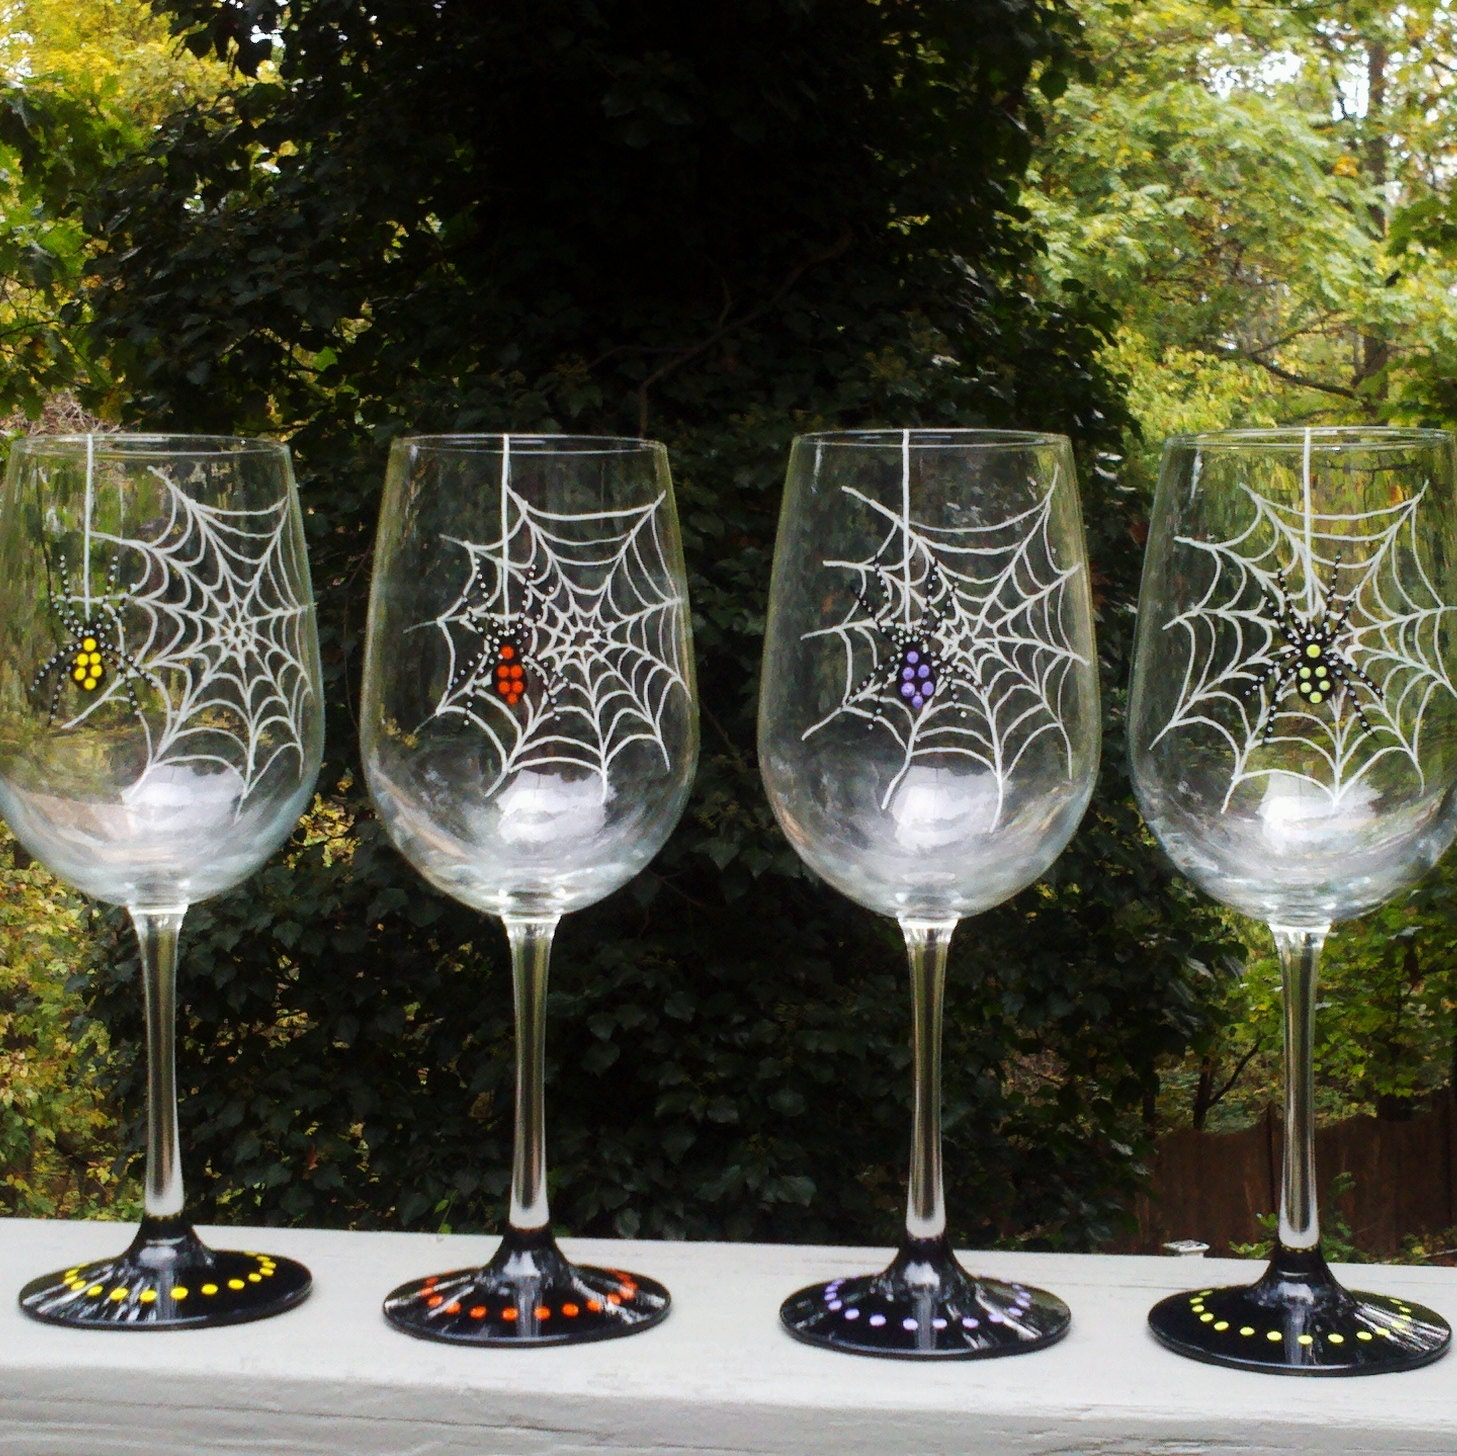 Spider halloween hand painted wine glasses by glassesbyjoanne